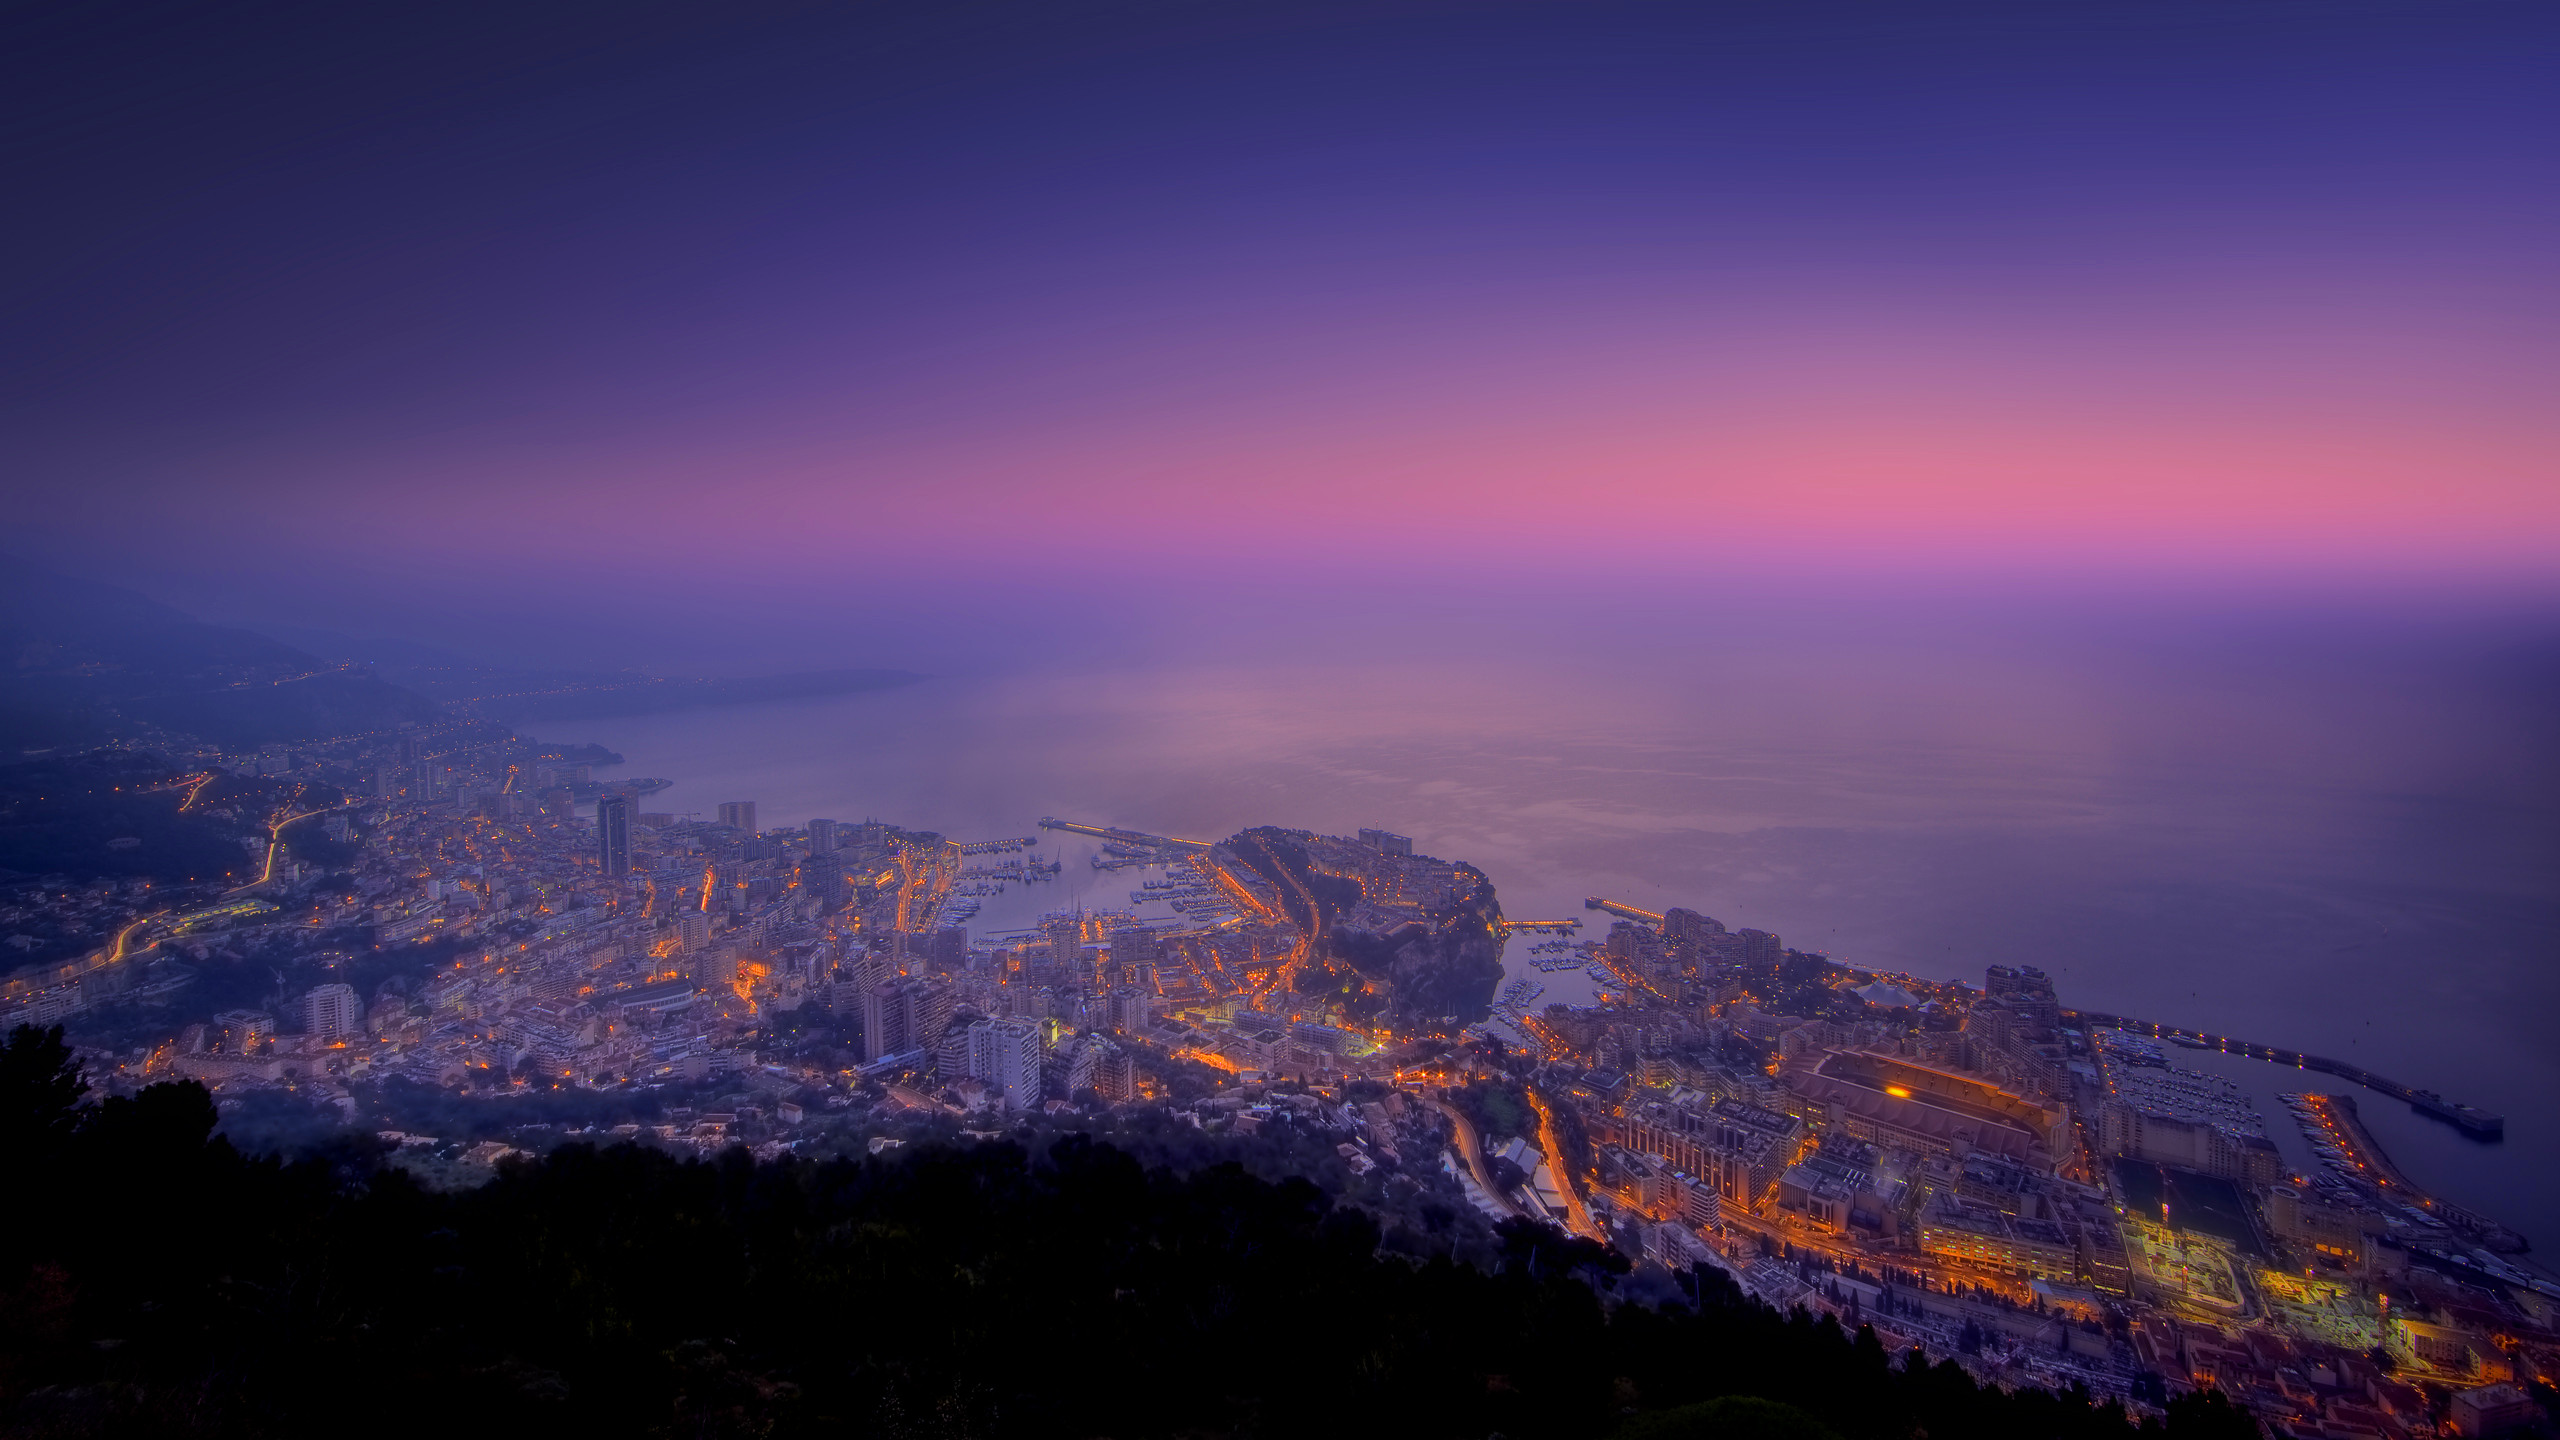 monaco-monte-carlo-in-late-sunset